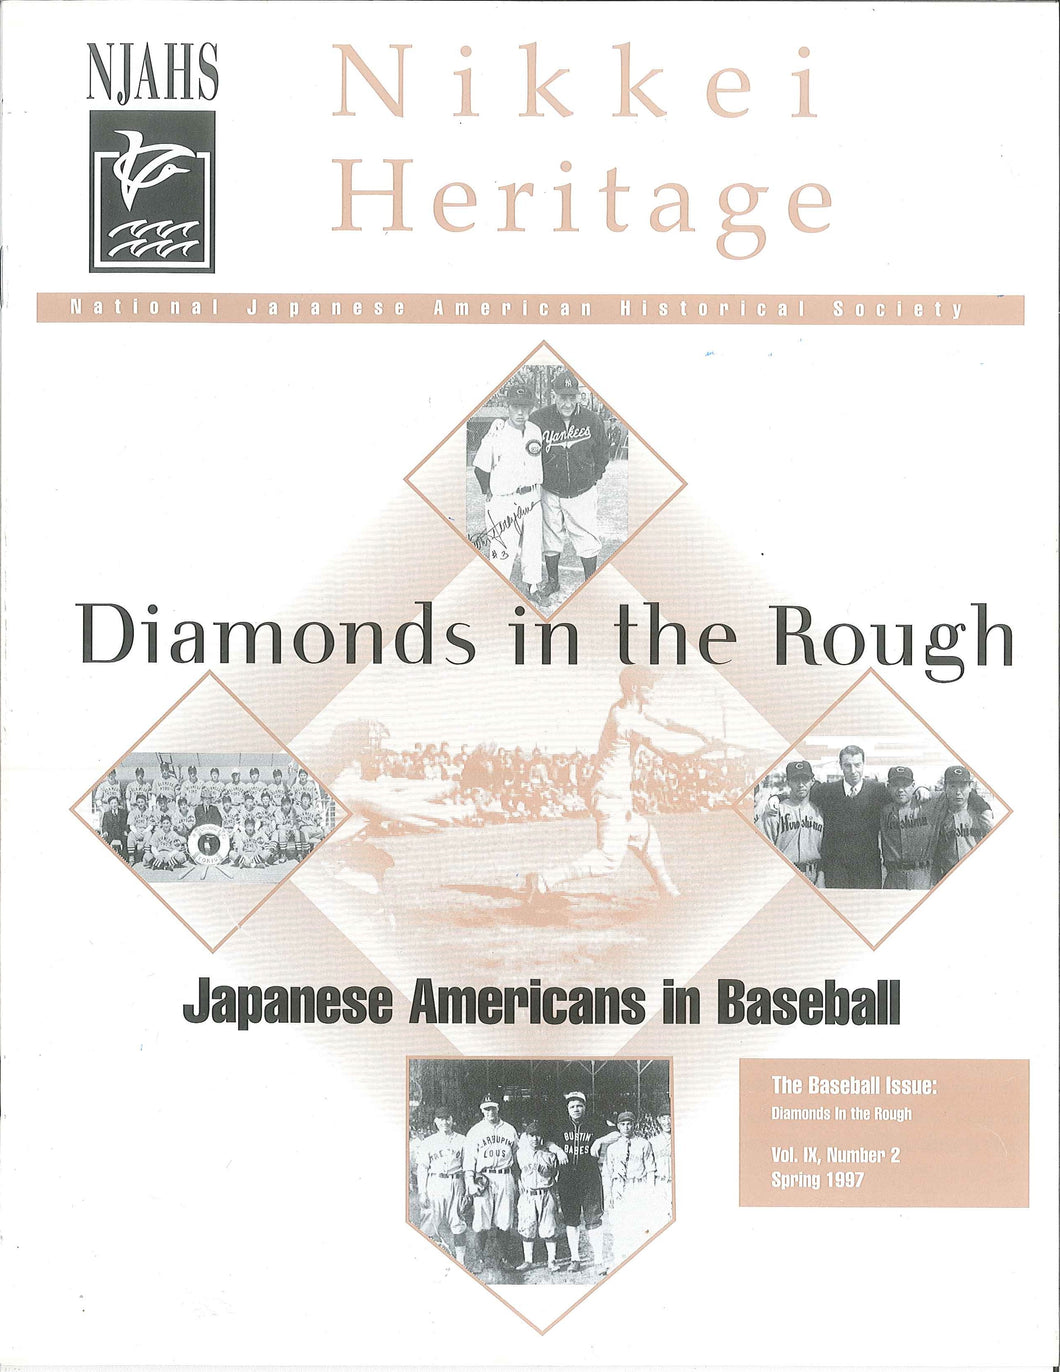 Nikkei Heritage - The Baseball Issue: Diamonds in the Rough